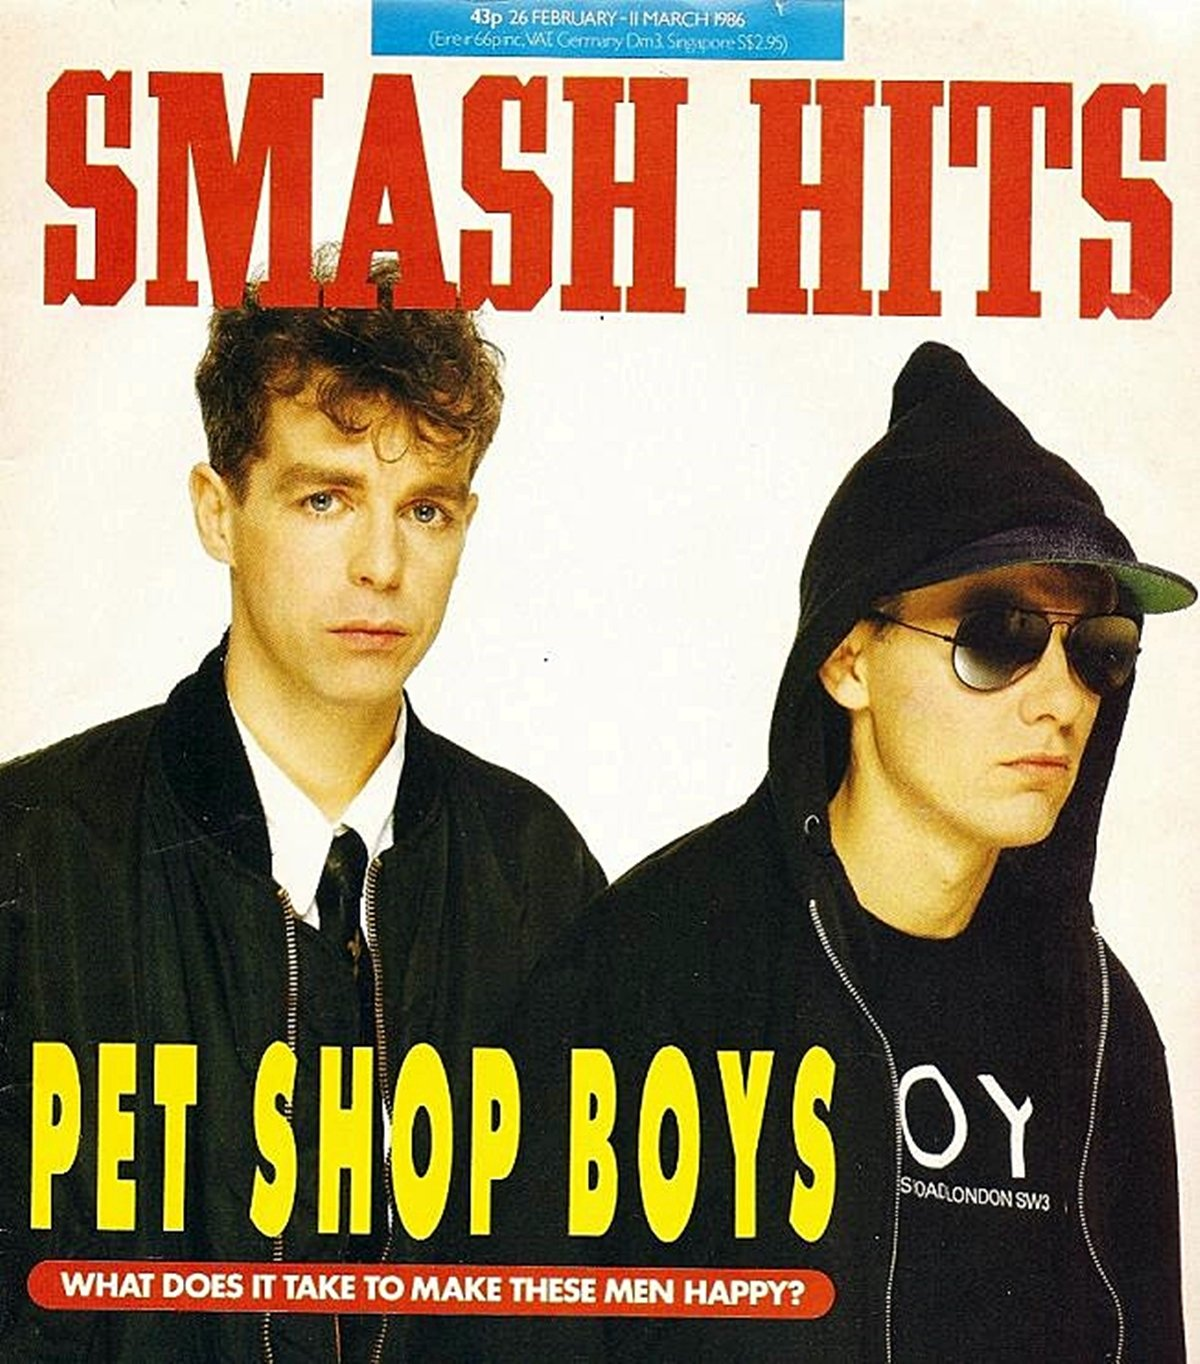 2 26 20 Things You May Not Have Realised About The Pet Shop Boys